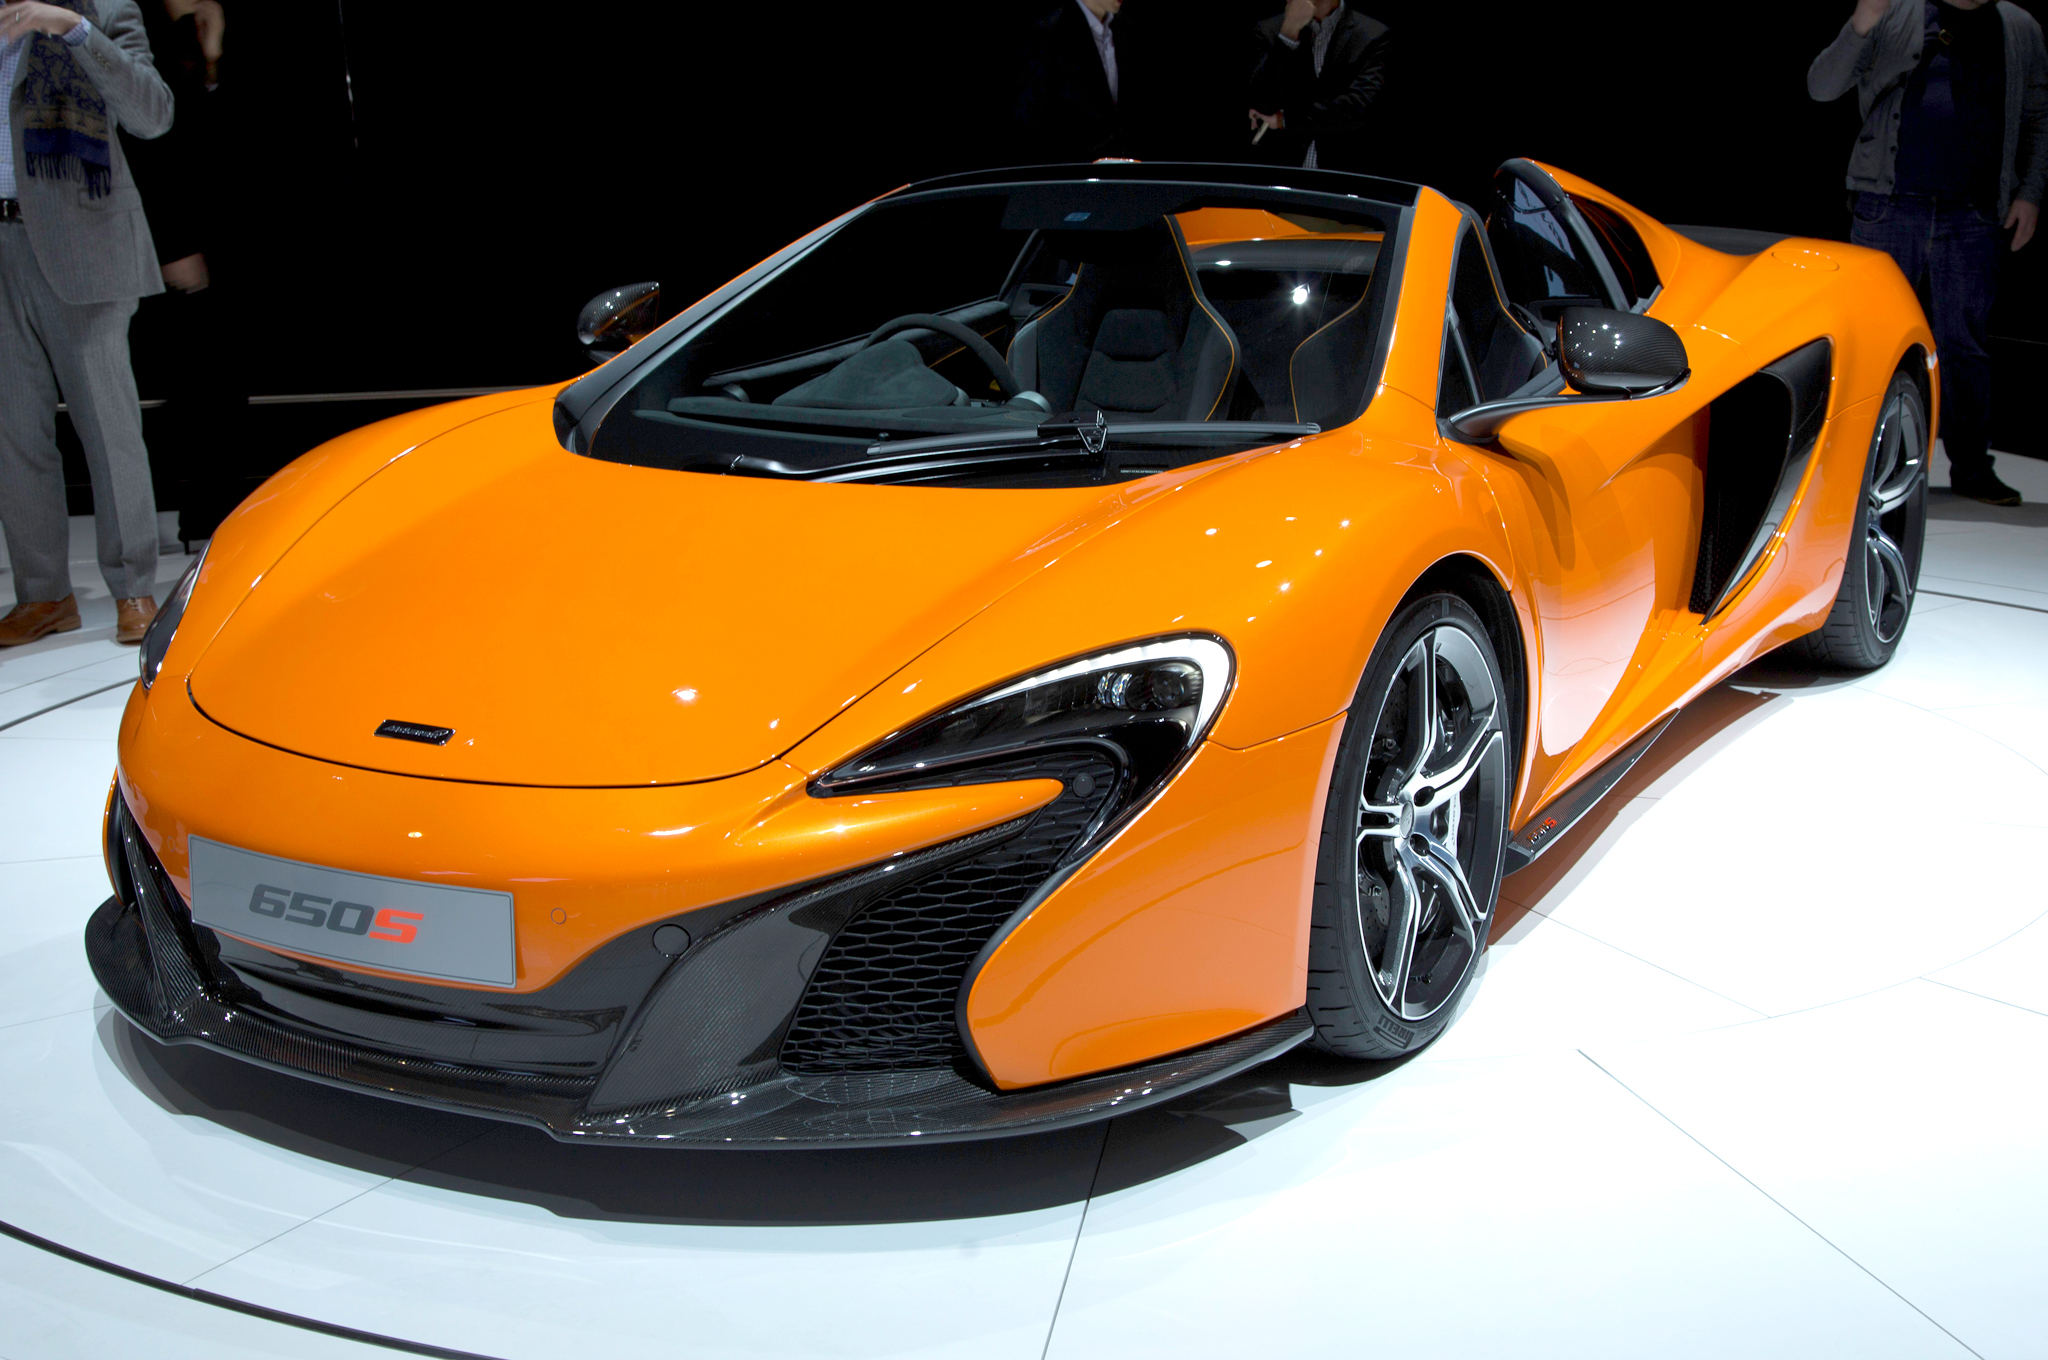 2015 mclaren 650s spider information and photos zombiedrive. Black Bedroom Furniture Sets. Home Design Ideas